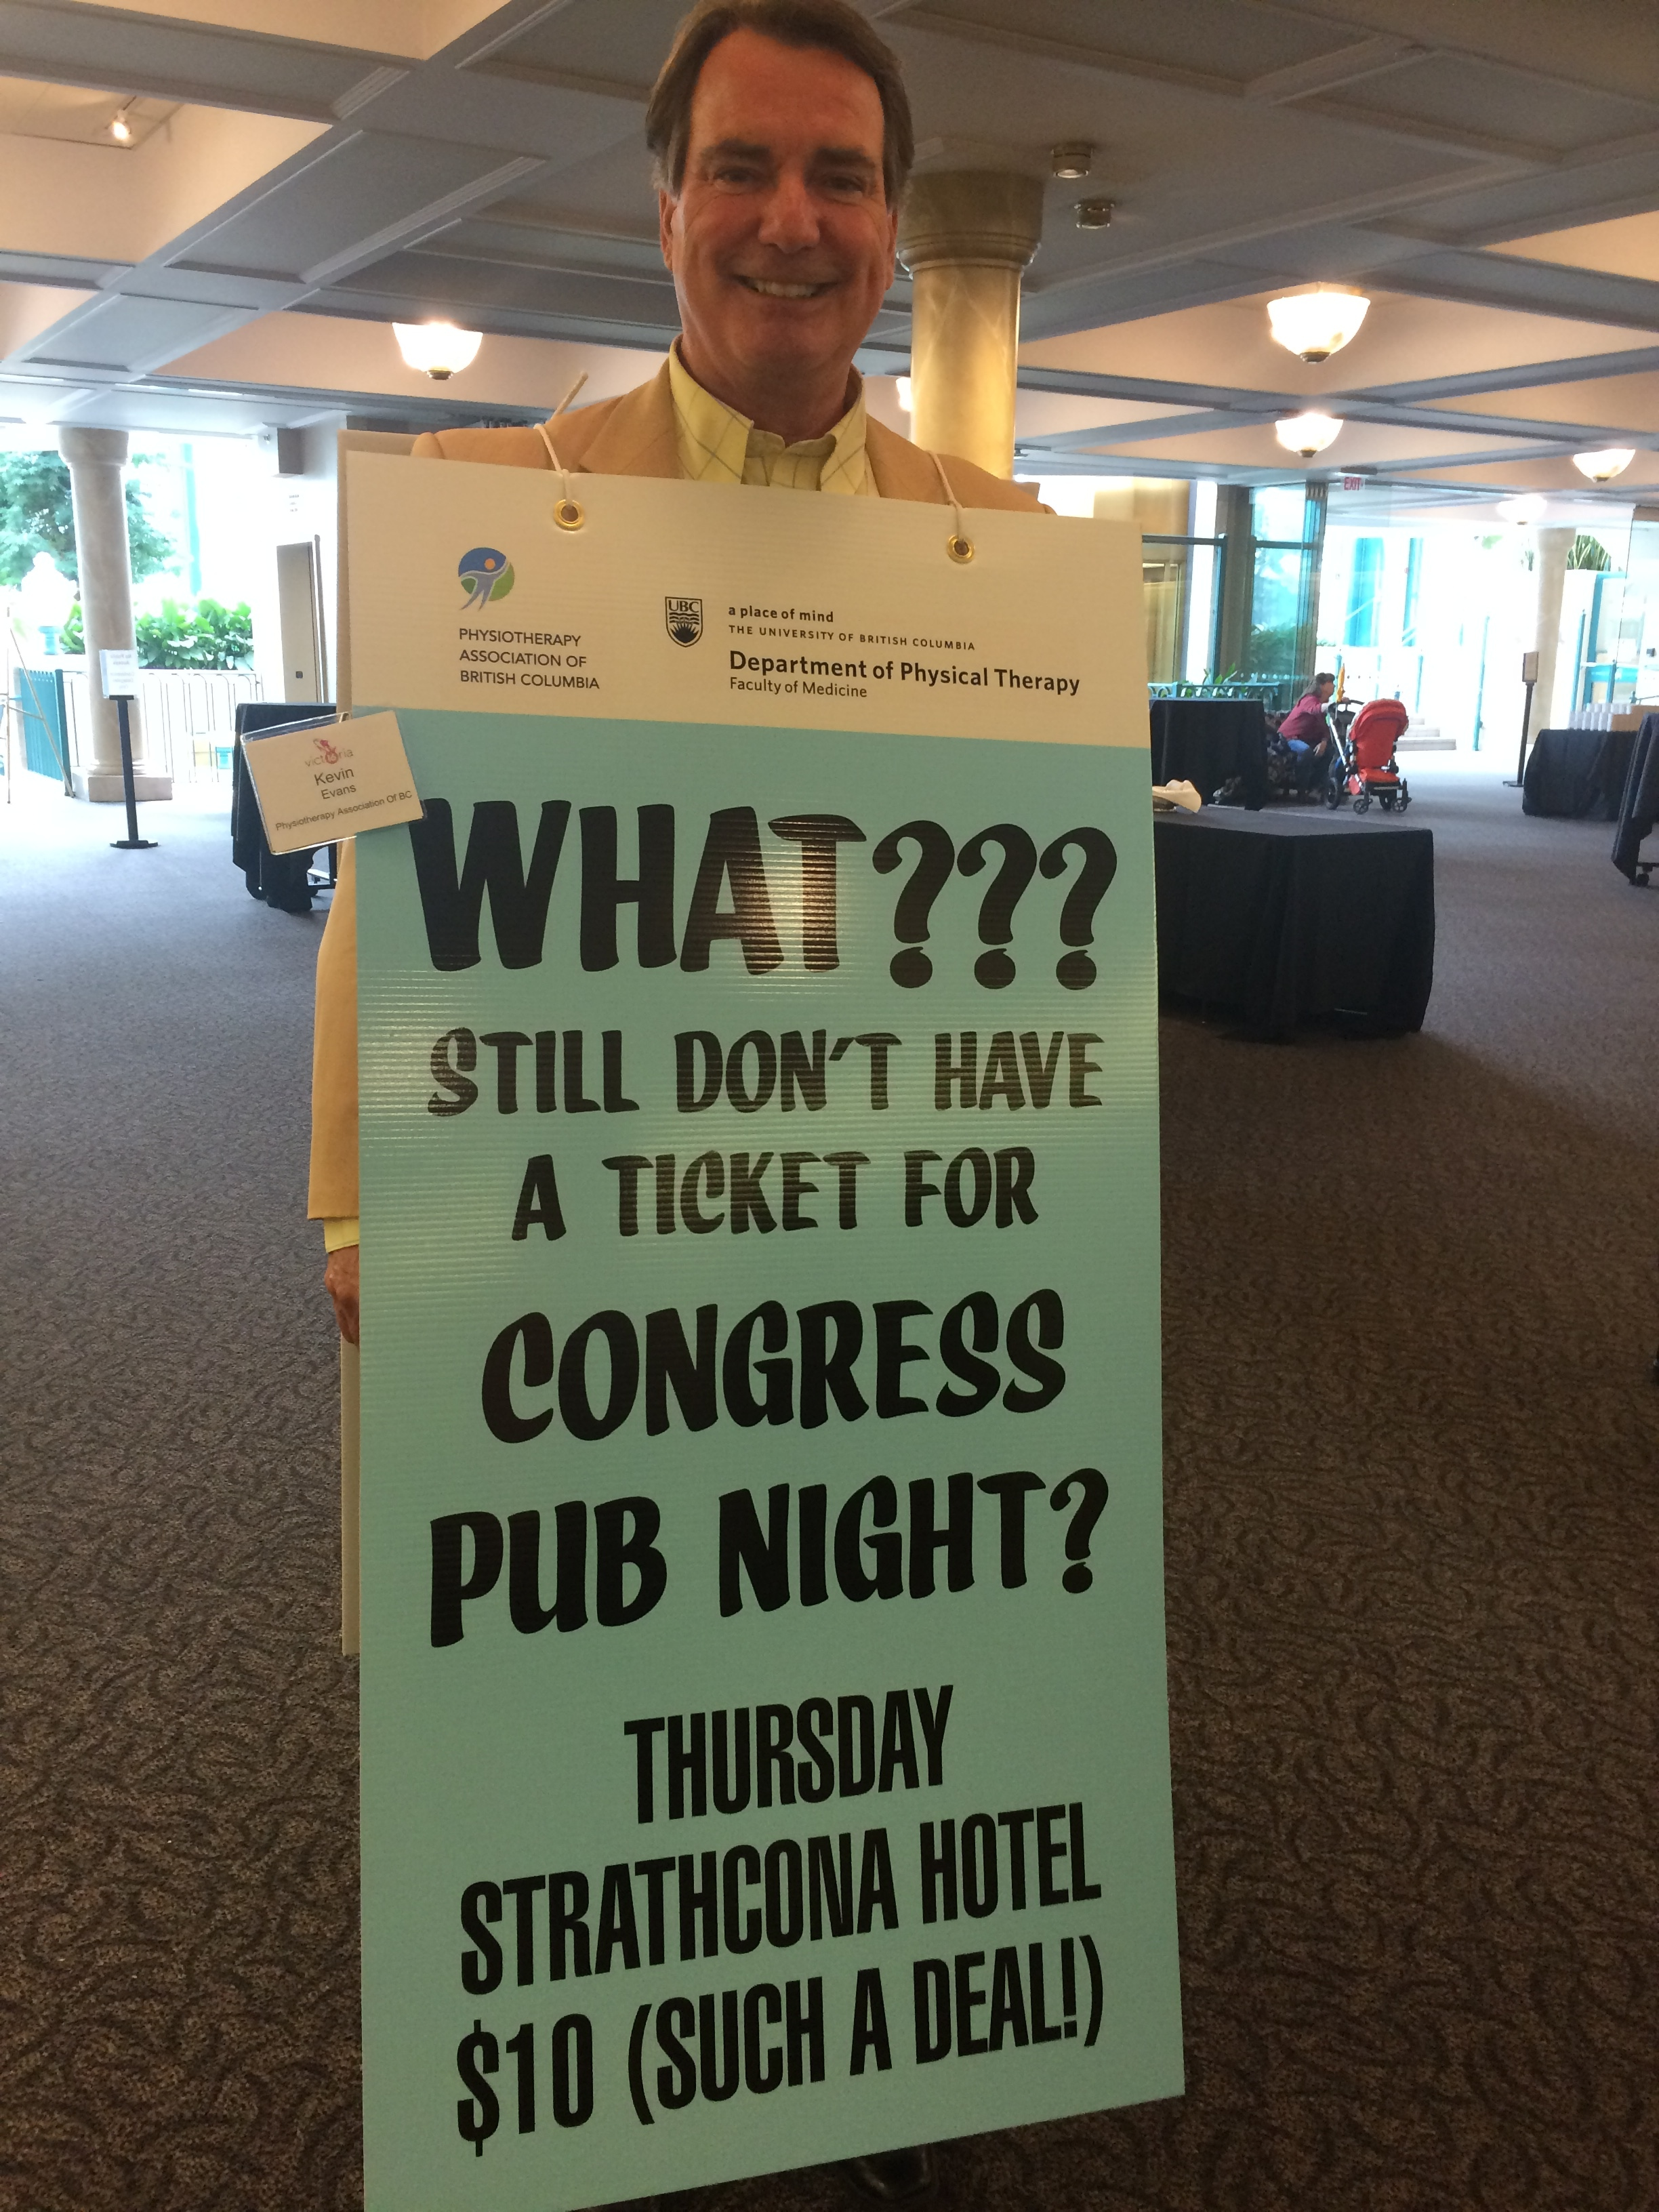 Canadian board of physical therapy - Organized And Hosted By The Physiotherapy Association Of British Columbia And The University Of British Columbia Congress Pub Night Was A Sold Out Affair